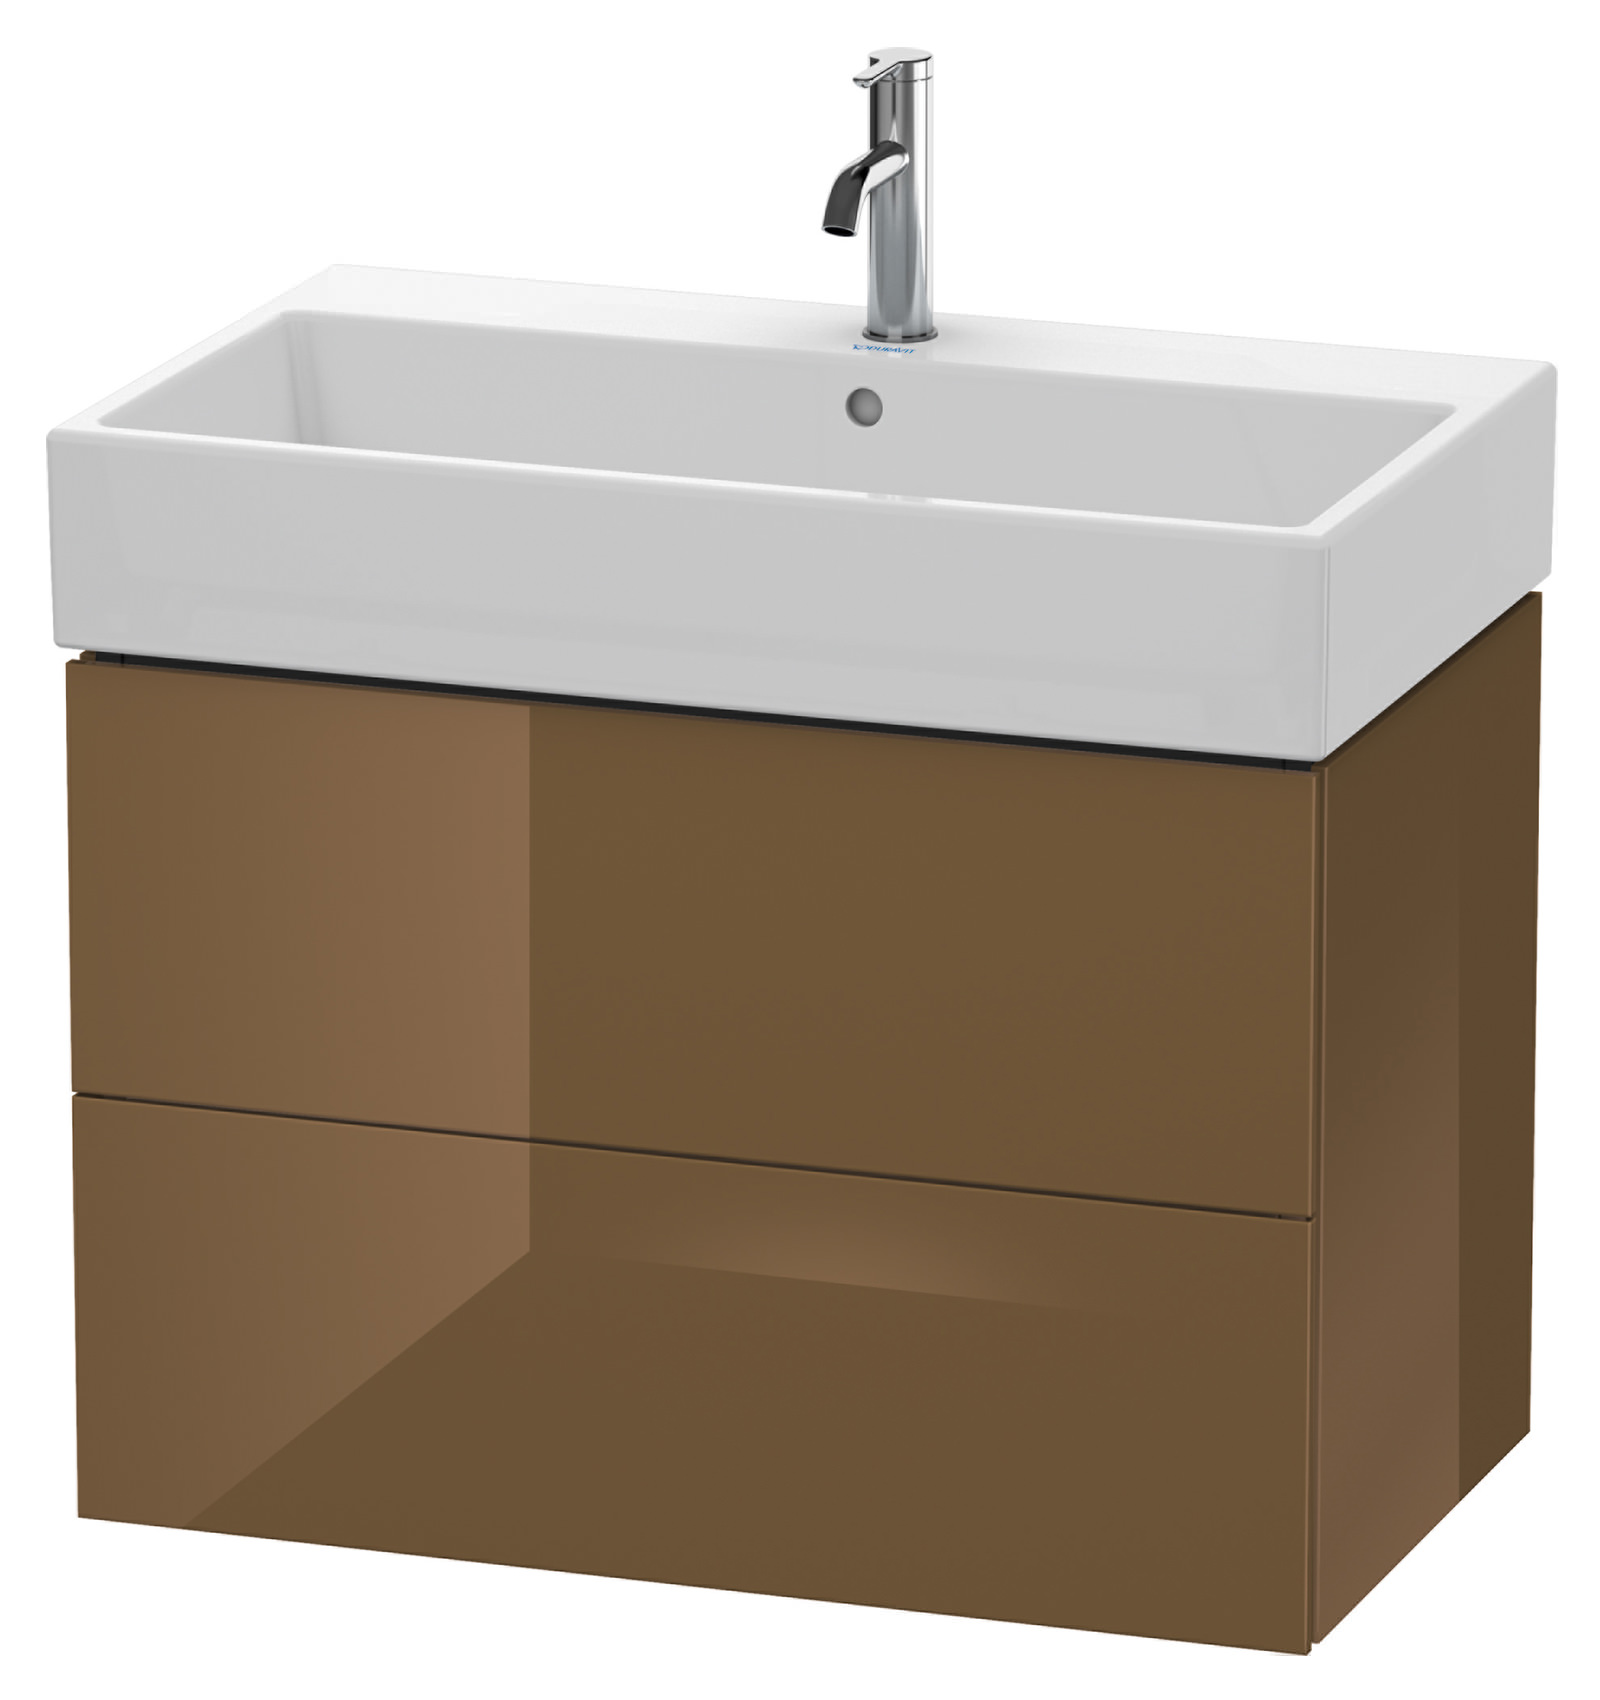 duravit l cube 784mm 2 drawer vanity unit with vero air basin. Black Bedroom Furniture Sets. Home Design Ideas